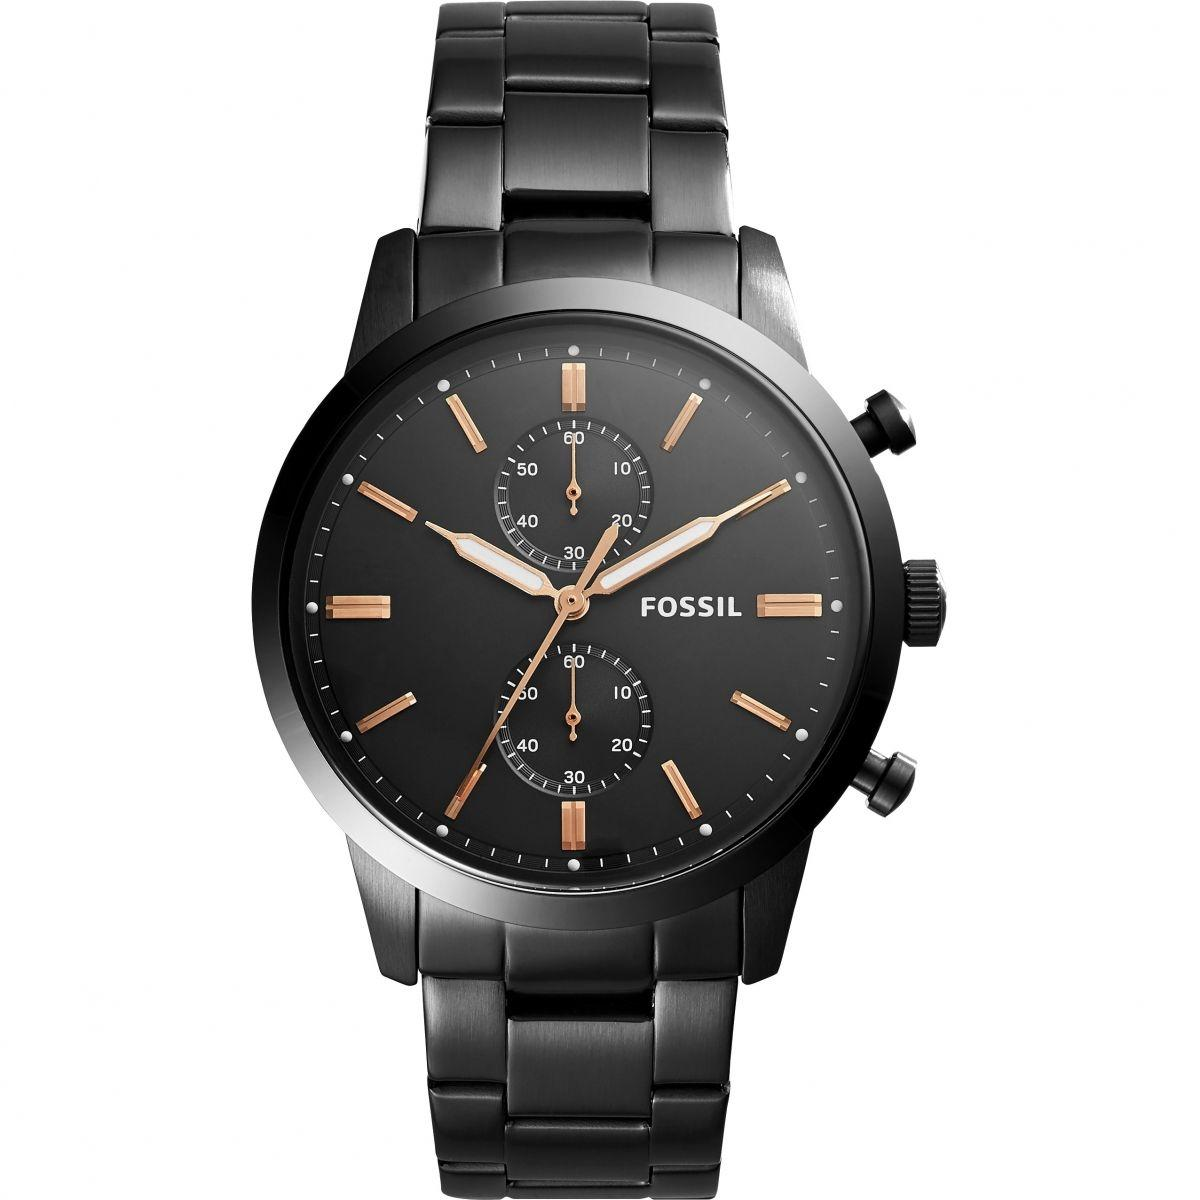 Fossil Watch Buy At Best Price In Nepal Daraz Es3707 Jacqueline Gray Leather Rose Gold Townsman Black Dial Chronograph For Men Fs5379